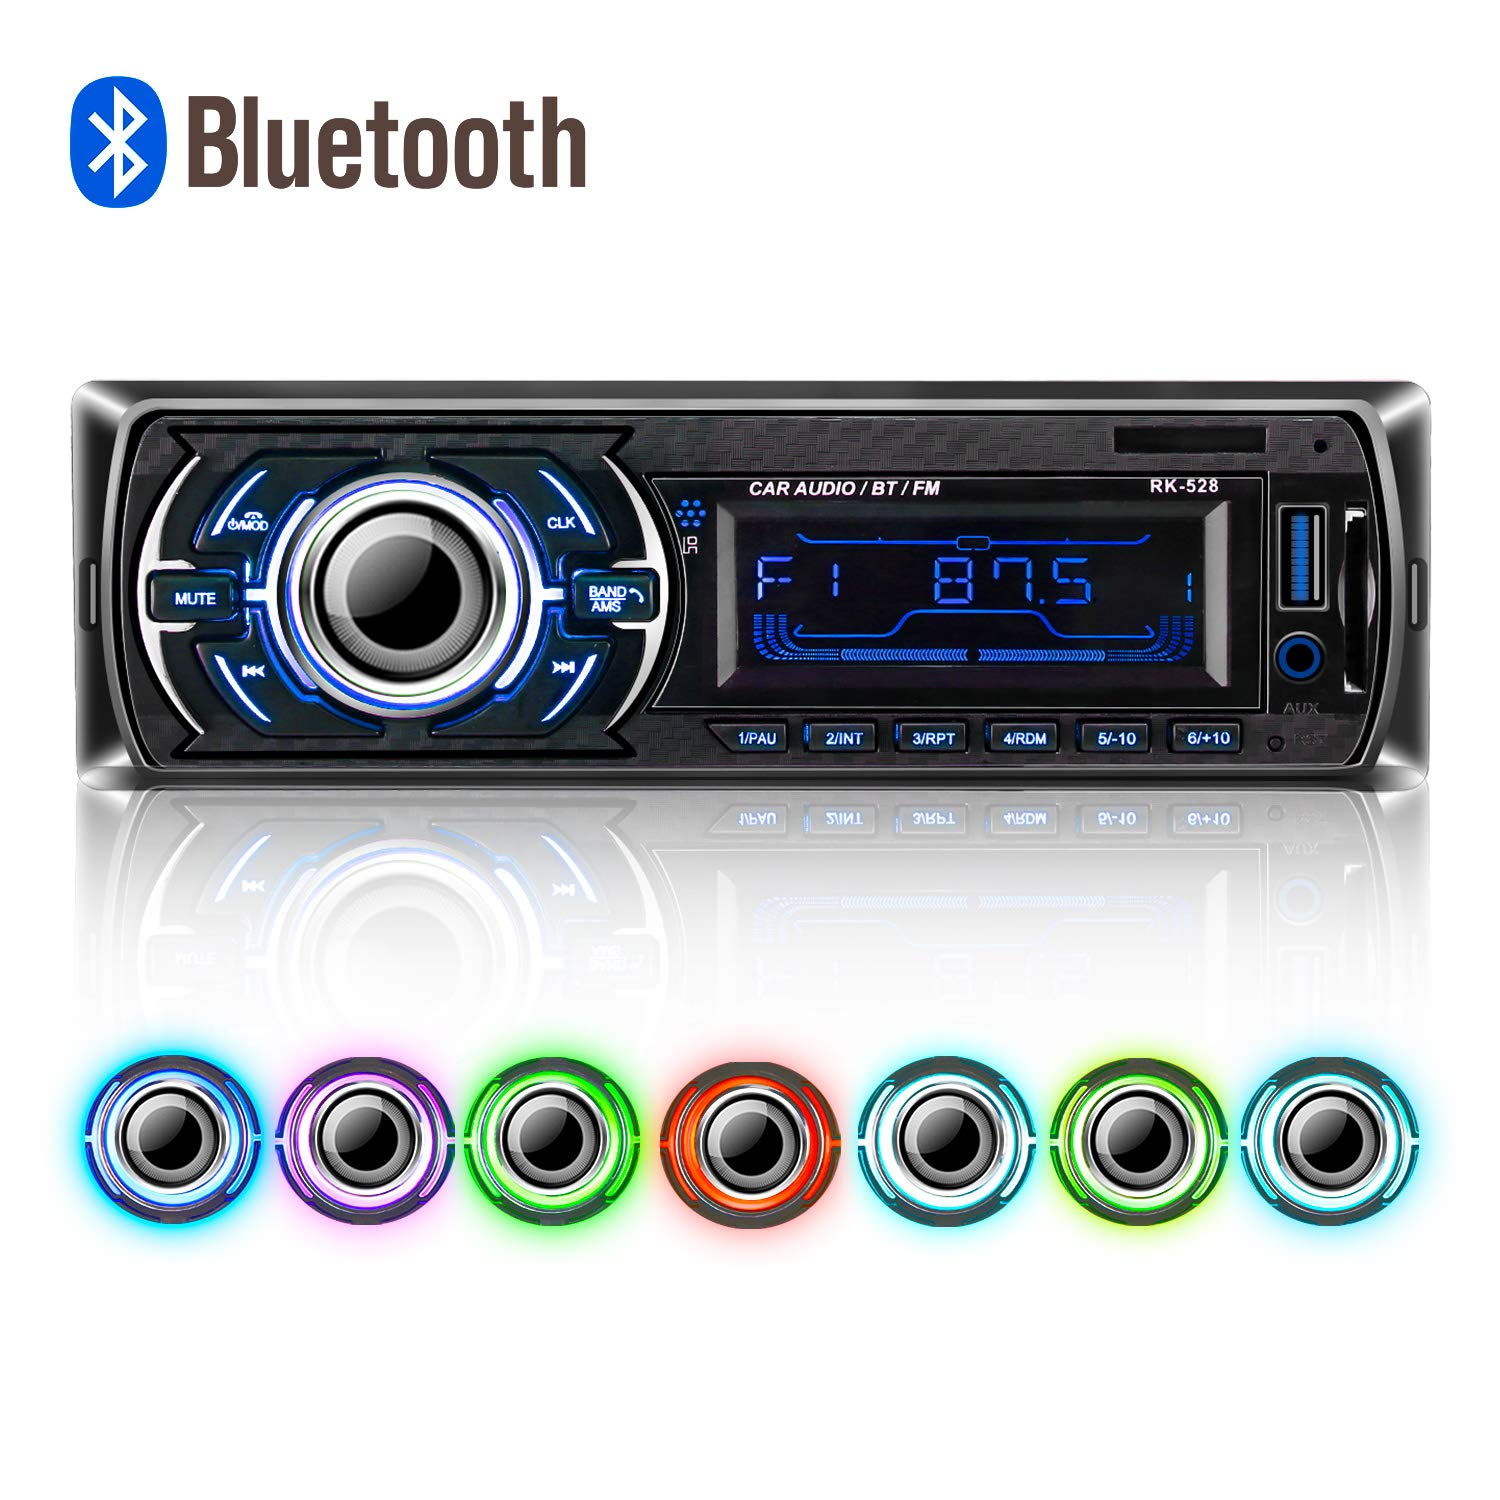 Radio de Coche Bluetooth,POMILE Single DIN Radio de Coche Auto Control MP3 Player Manos Libres y Micró fono Integrado, Remoto Inalá mbrico POMILE Single DIN Radio de Coche Auto Control MP3 Player Manos Libres y Micrófono Integrado